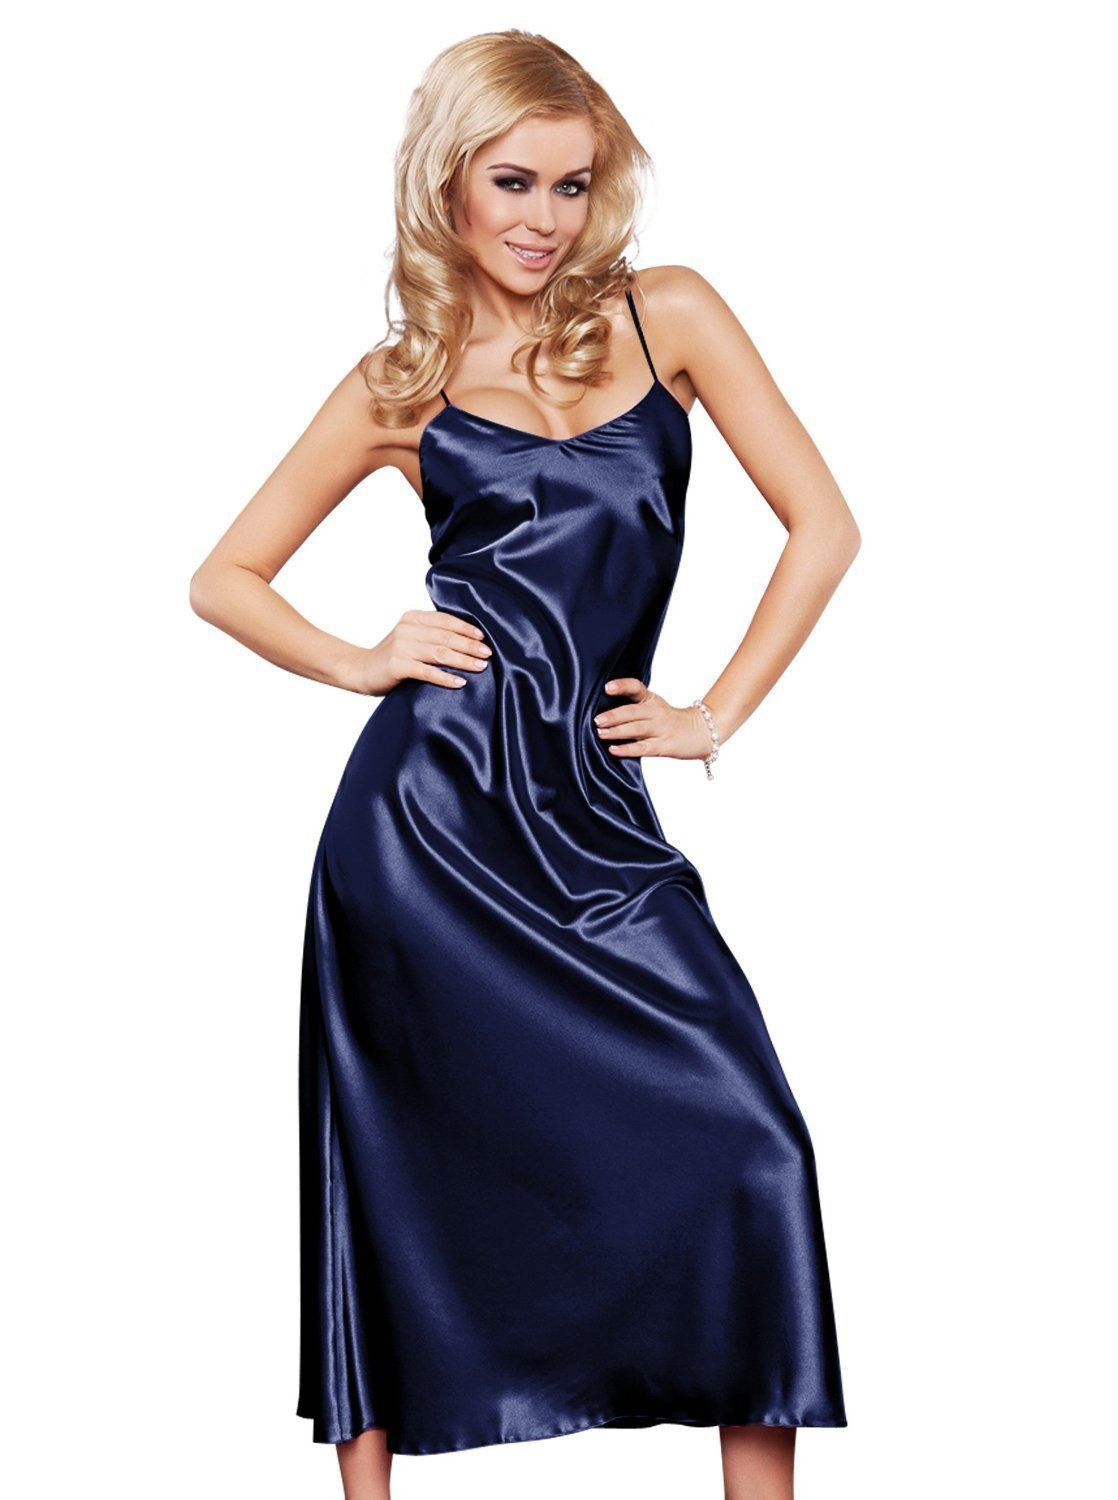 long satin chemise nightdress nightgown lingerie ebay. Black Bedroom Furniture Sets. Home Design Ideas